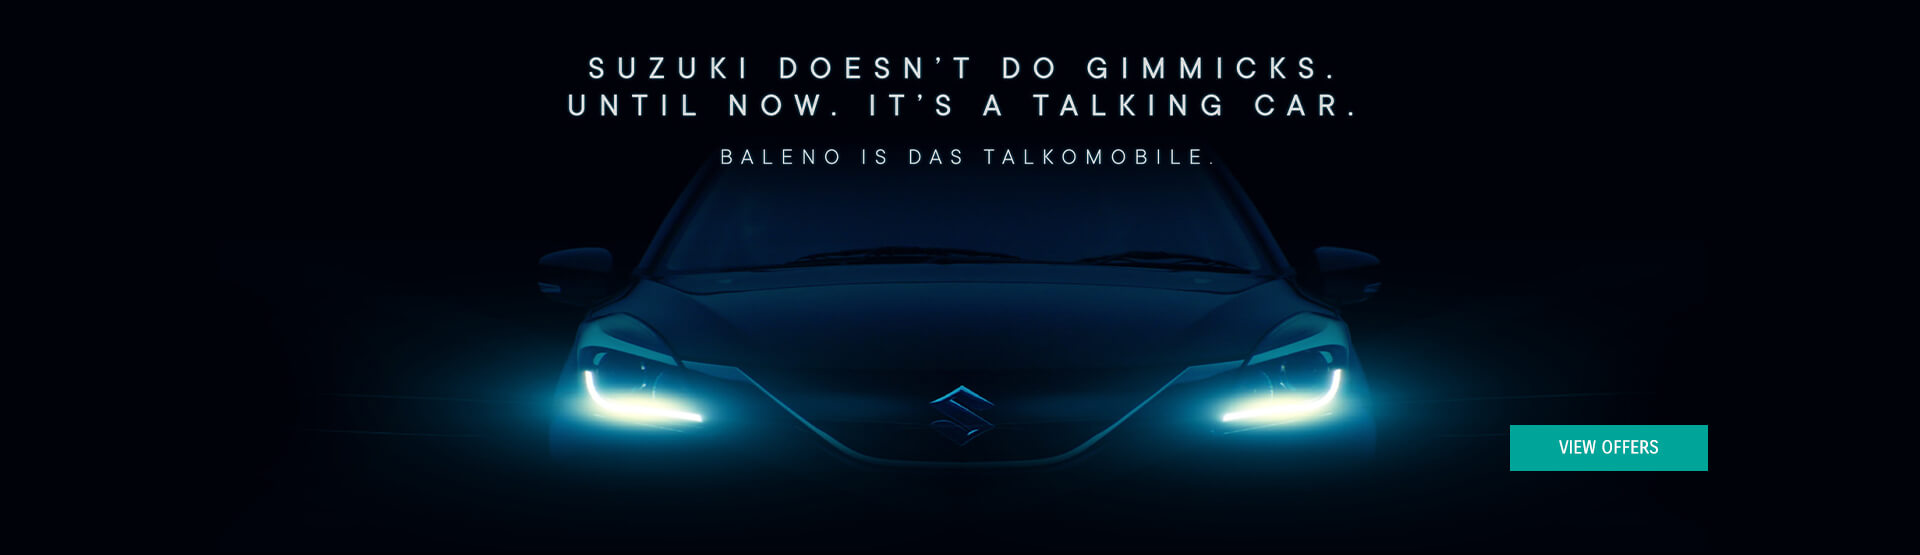 Suzuki doesn't do gimmick. Until now. It's a talking car. View offers.